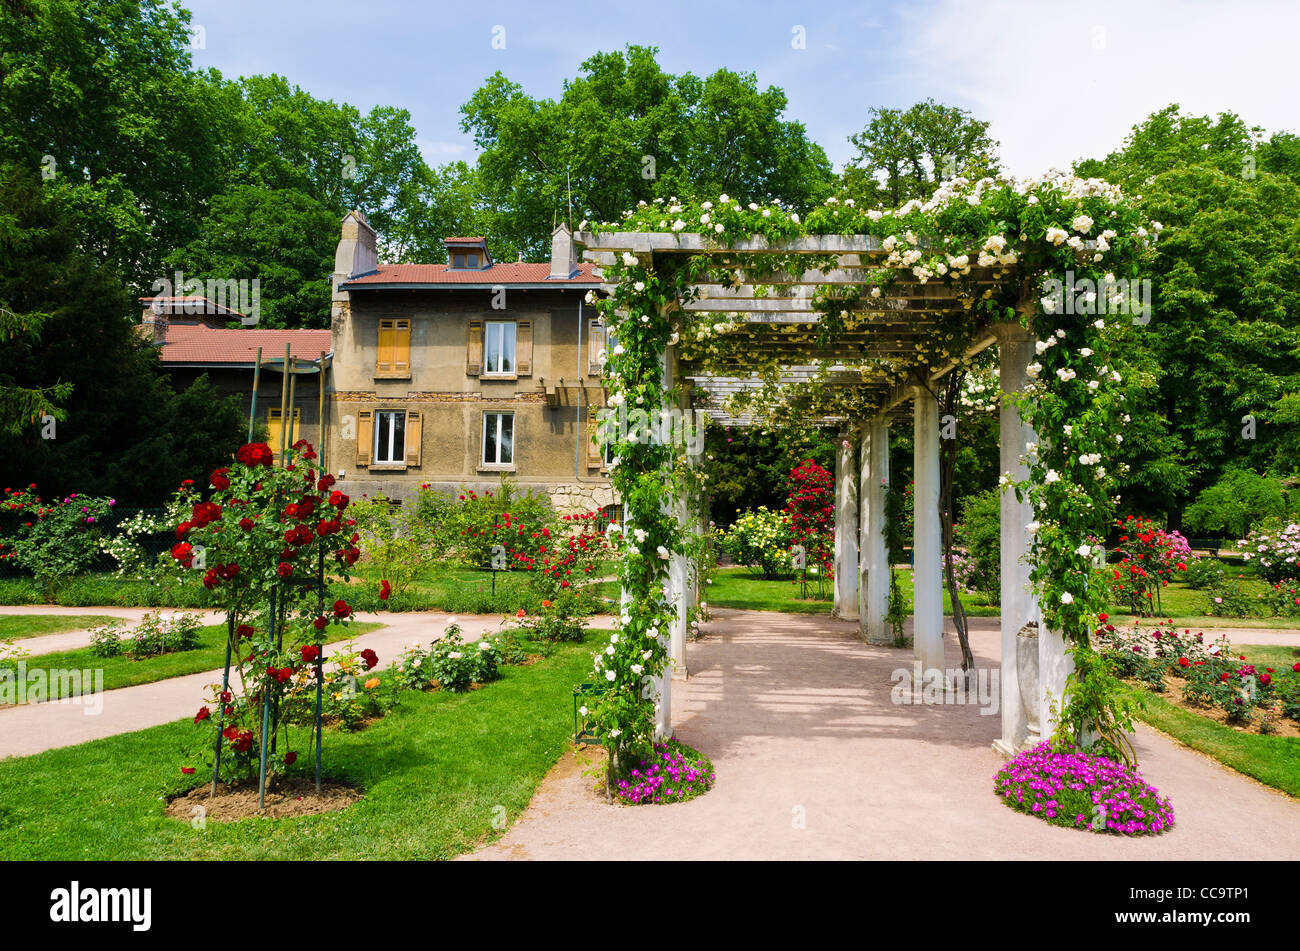 Rose Garden And Trellis At Parc De La Tete D Or Lyon France Unesco Stock Photo Alamy